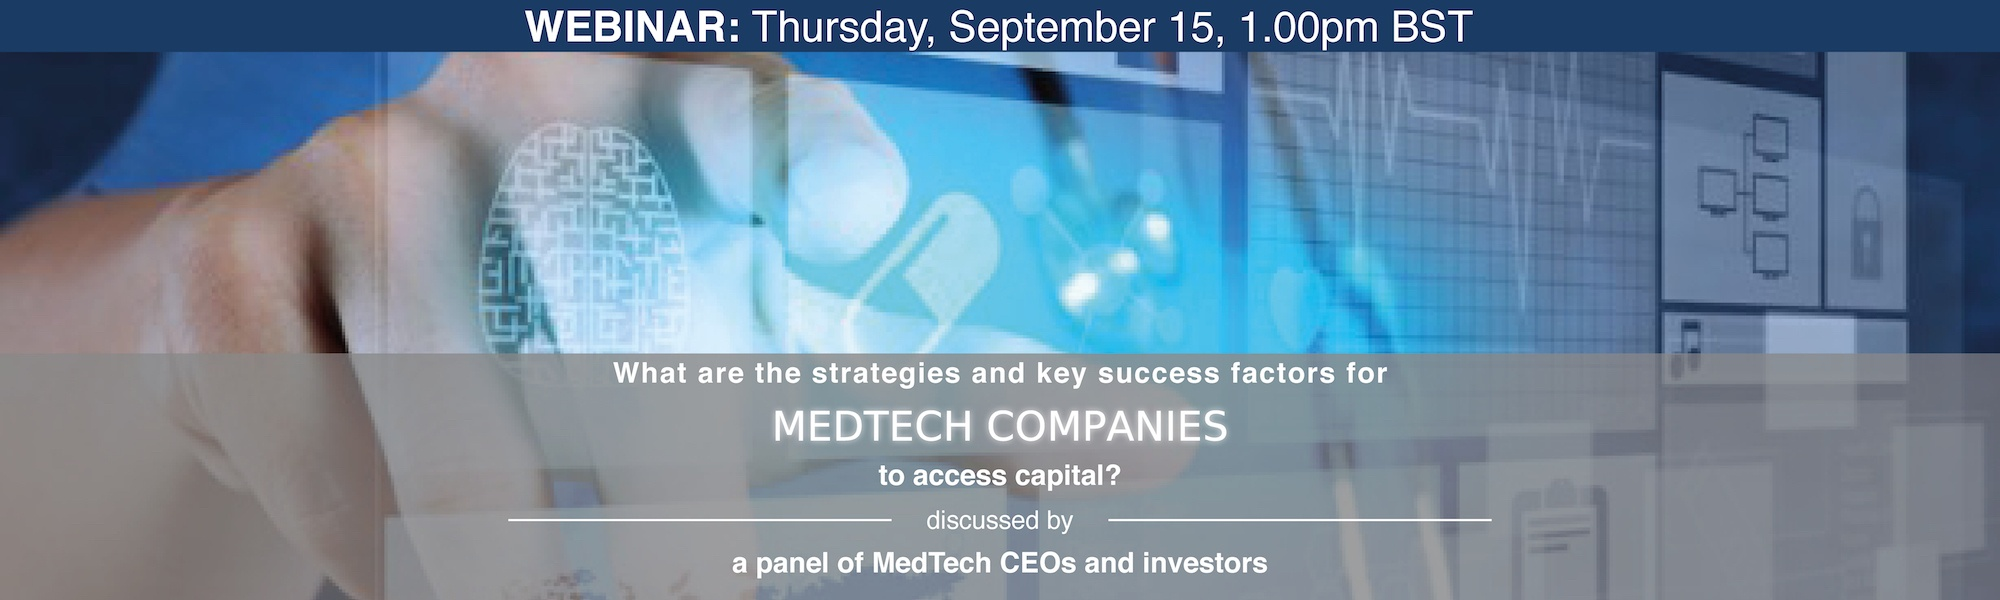 bannière what are the strategies and key success factors for medtech companies to access capital 2000x600